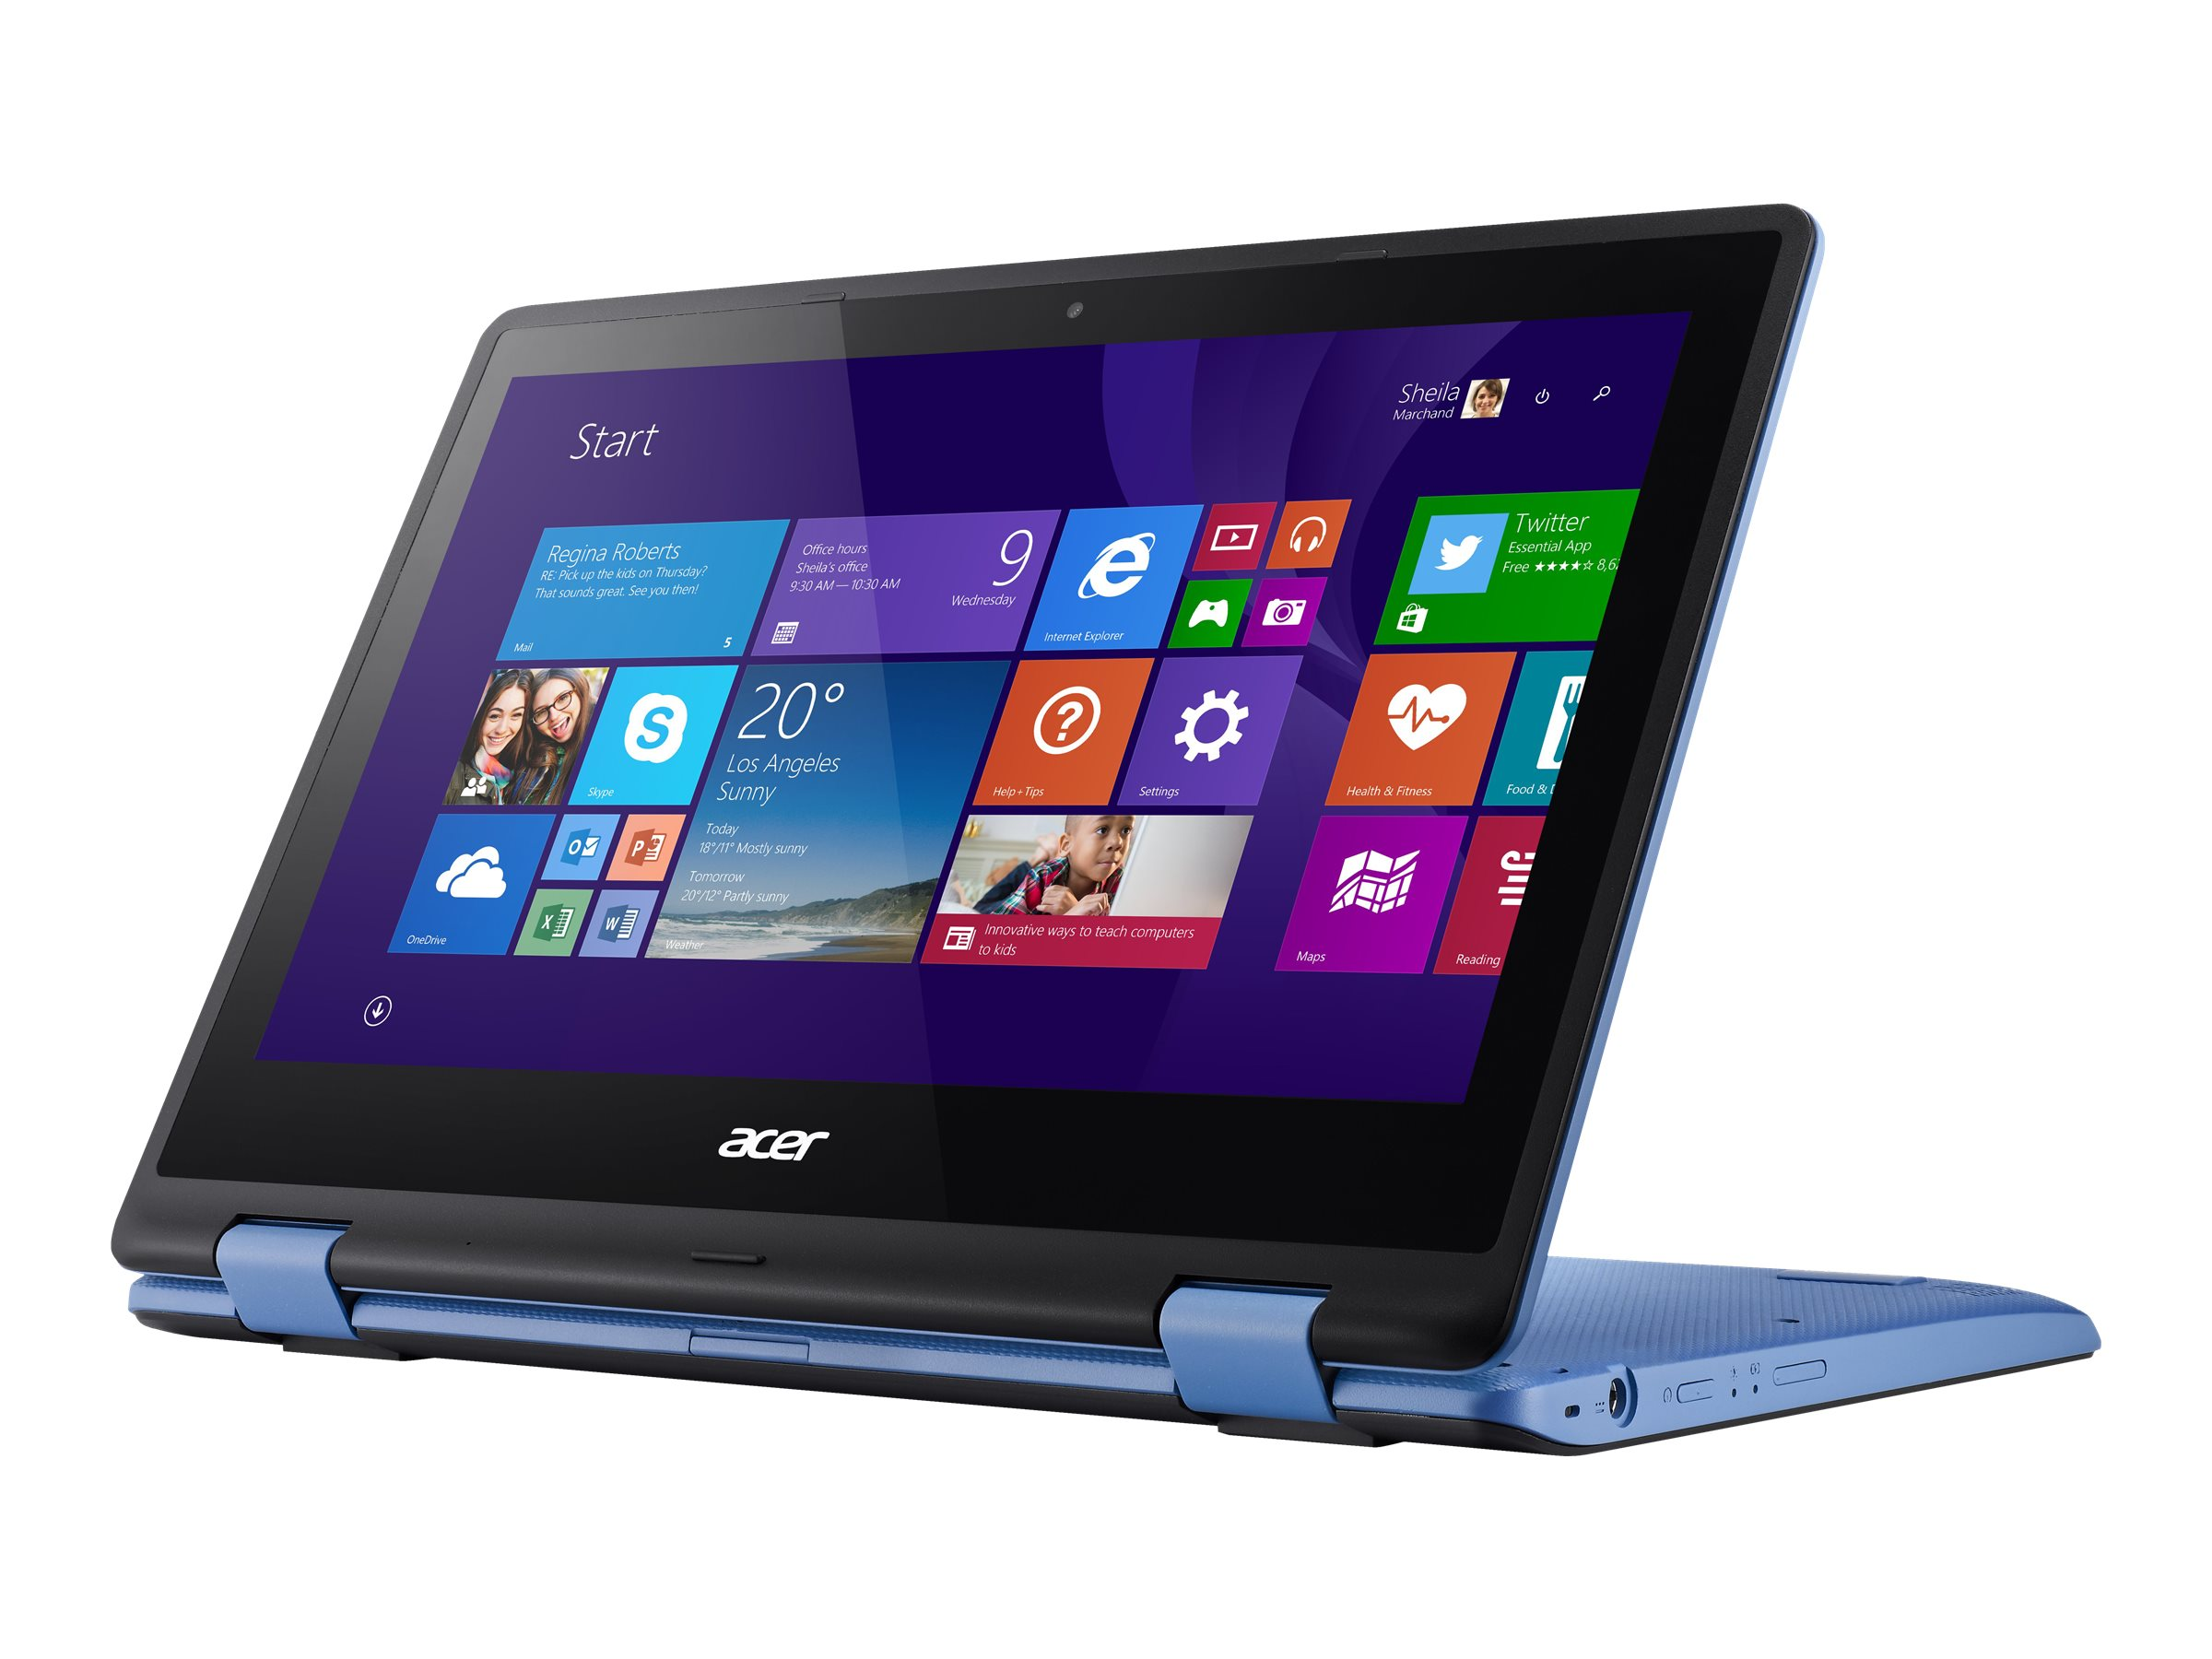 Acer Aspire R3-131T-C8B3 Celeron N3060 1.6GHz 4GB 64GB SSD ac GNIC BT WC 4C 11.6 HD MT W10H64 Blue